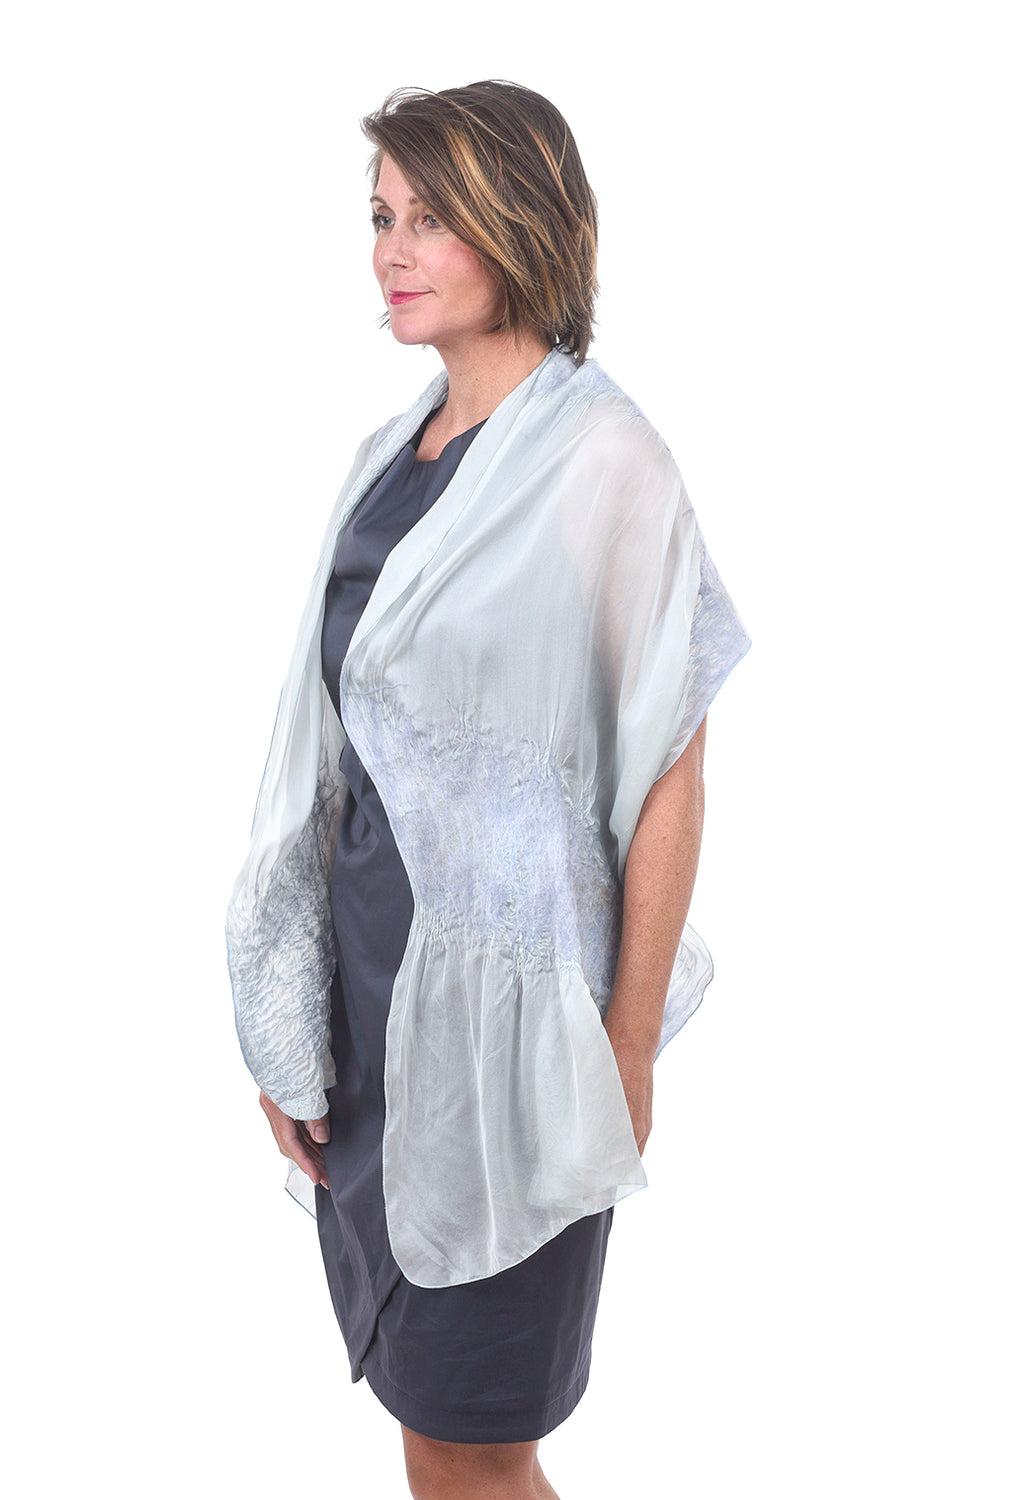 Christa Louise Romance Wrap, Greenland One Size